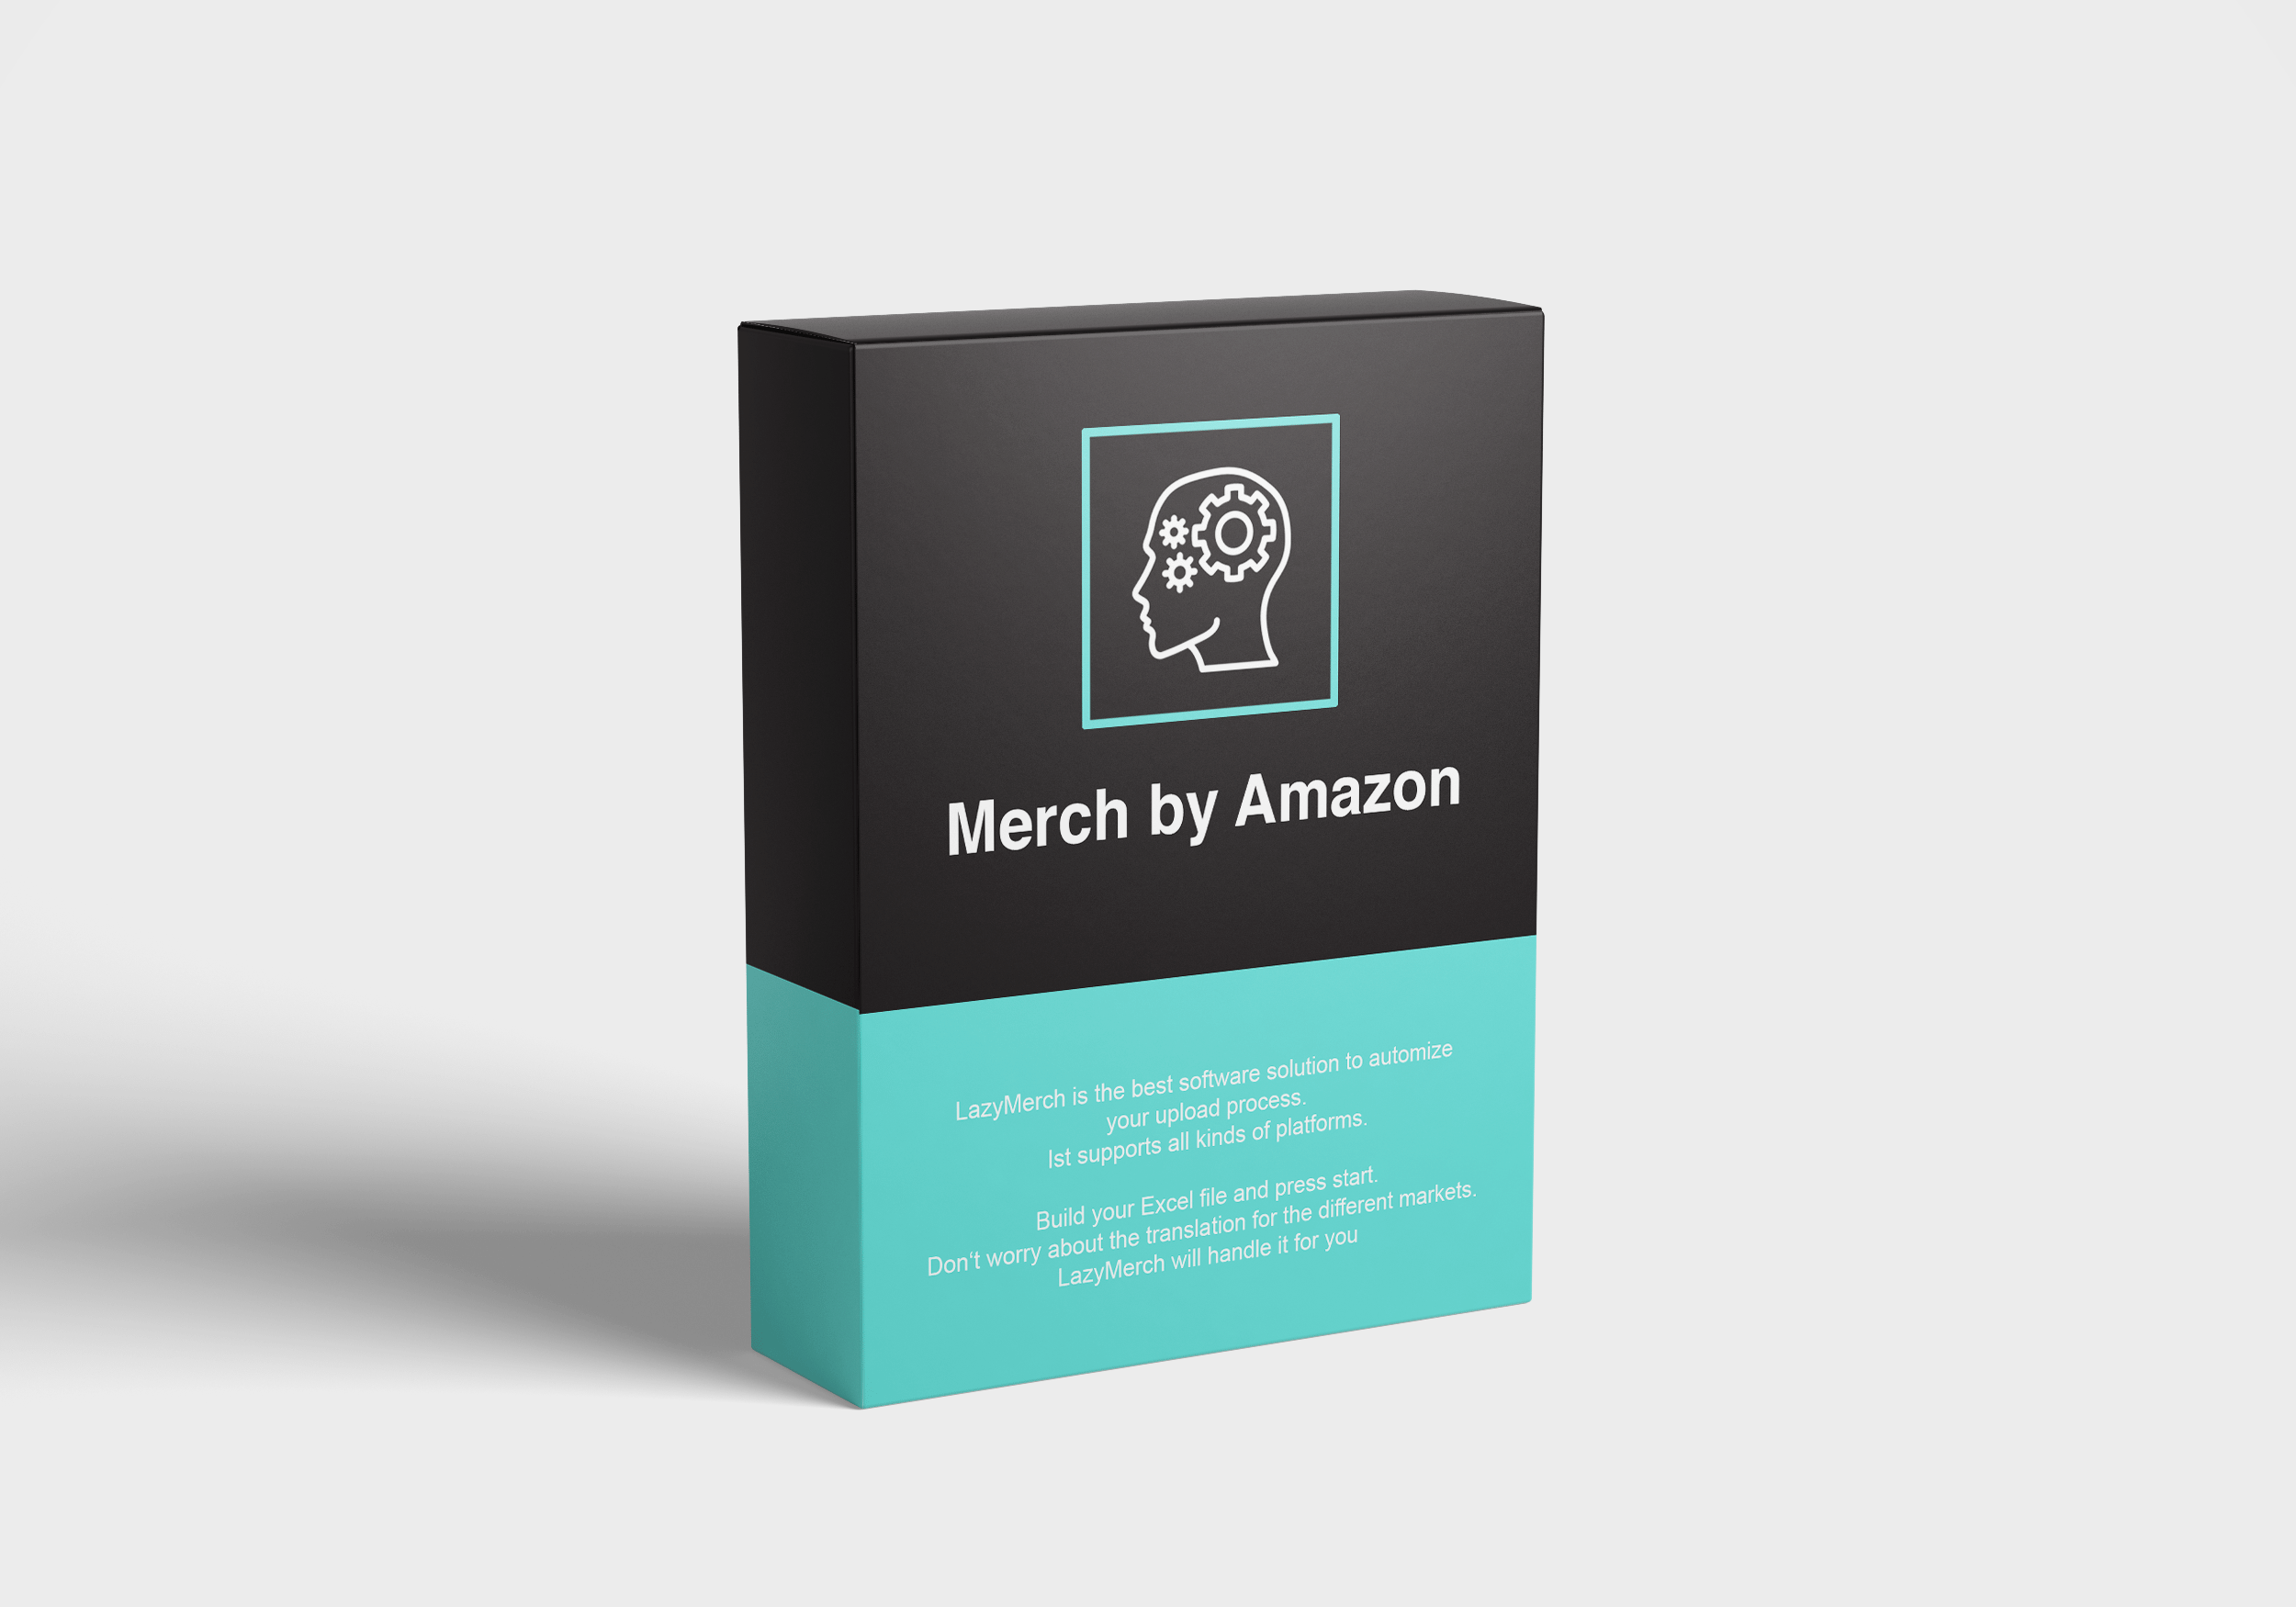 Merch by Amazon monthly package